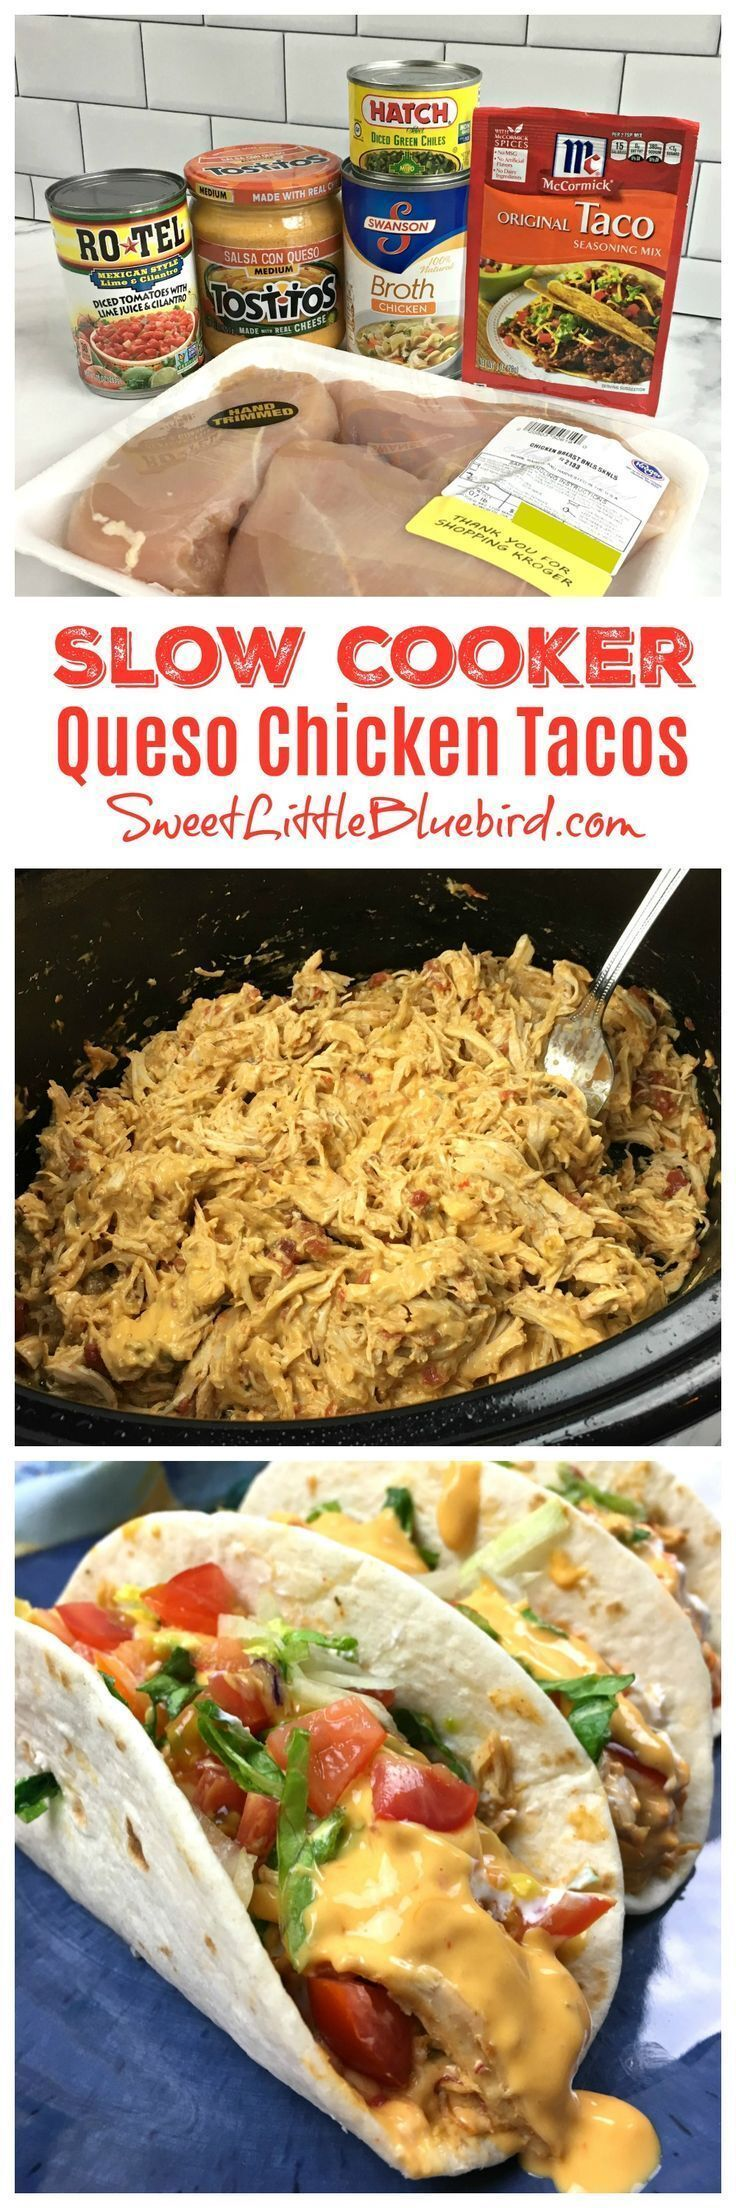 Photo of Slow Cooker Queso Chicken Tacos